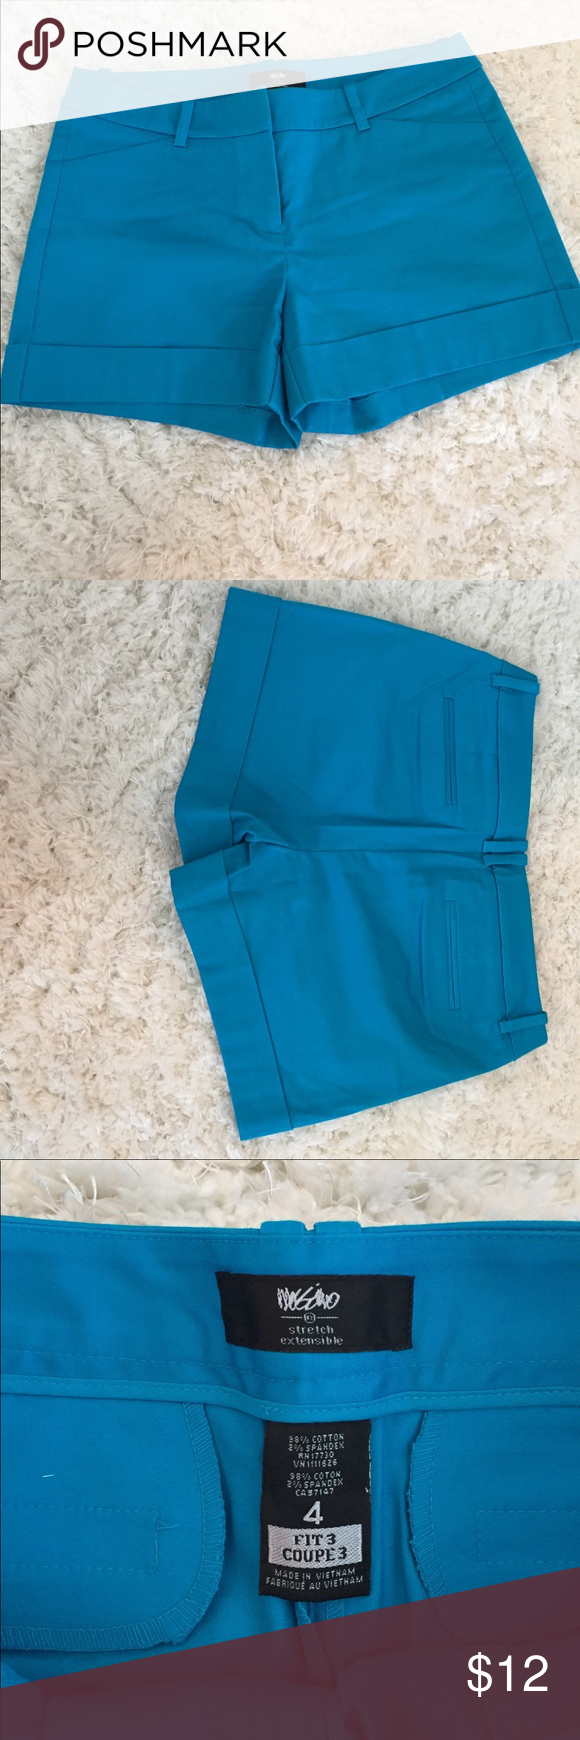 Turquoise summer shorts like Vineyard Vines 4 Super cute bright colored turquoise blue shorts. Very similar to Vineyard Vines but actually from target. New without tags. Size 4. Shorts